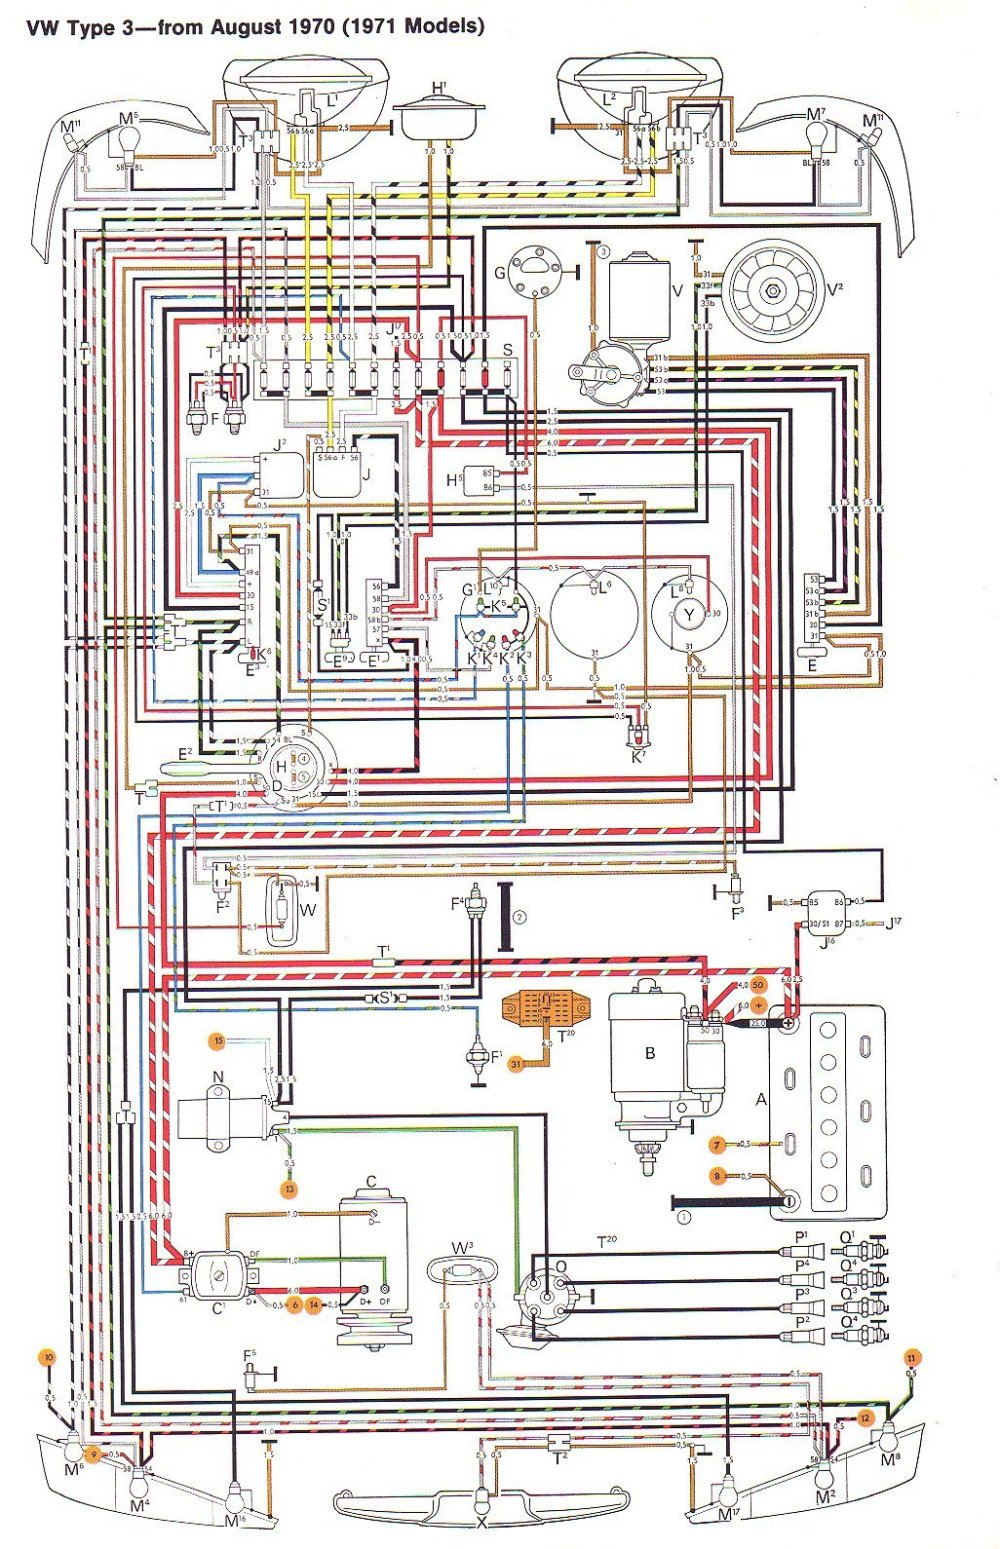 medium resolution of vw type 3 wiring diagrams 71 vw type 3 wiring diagram